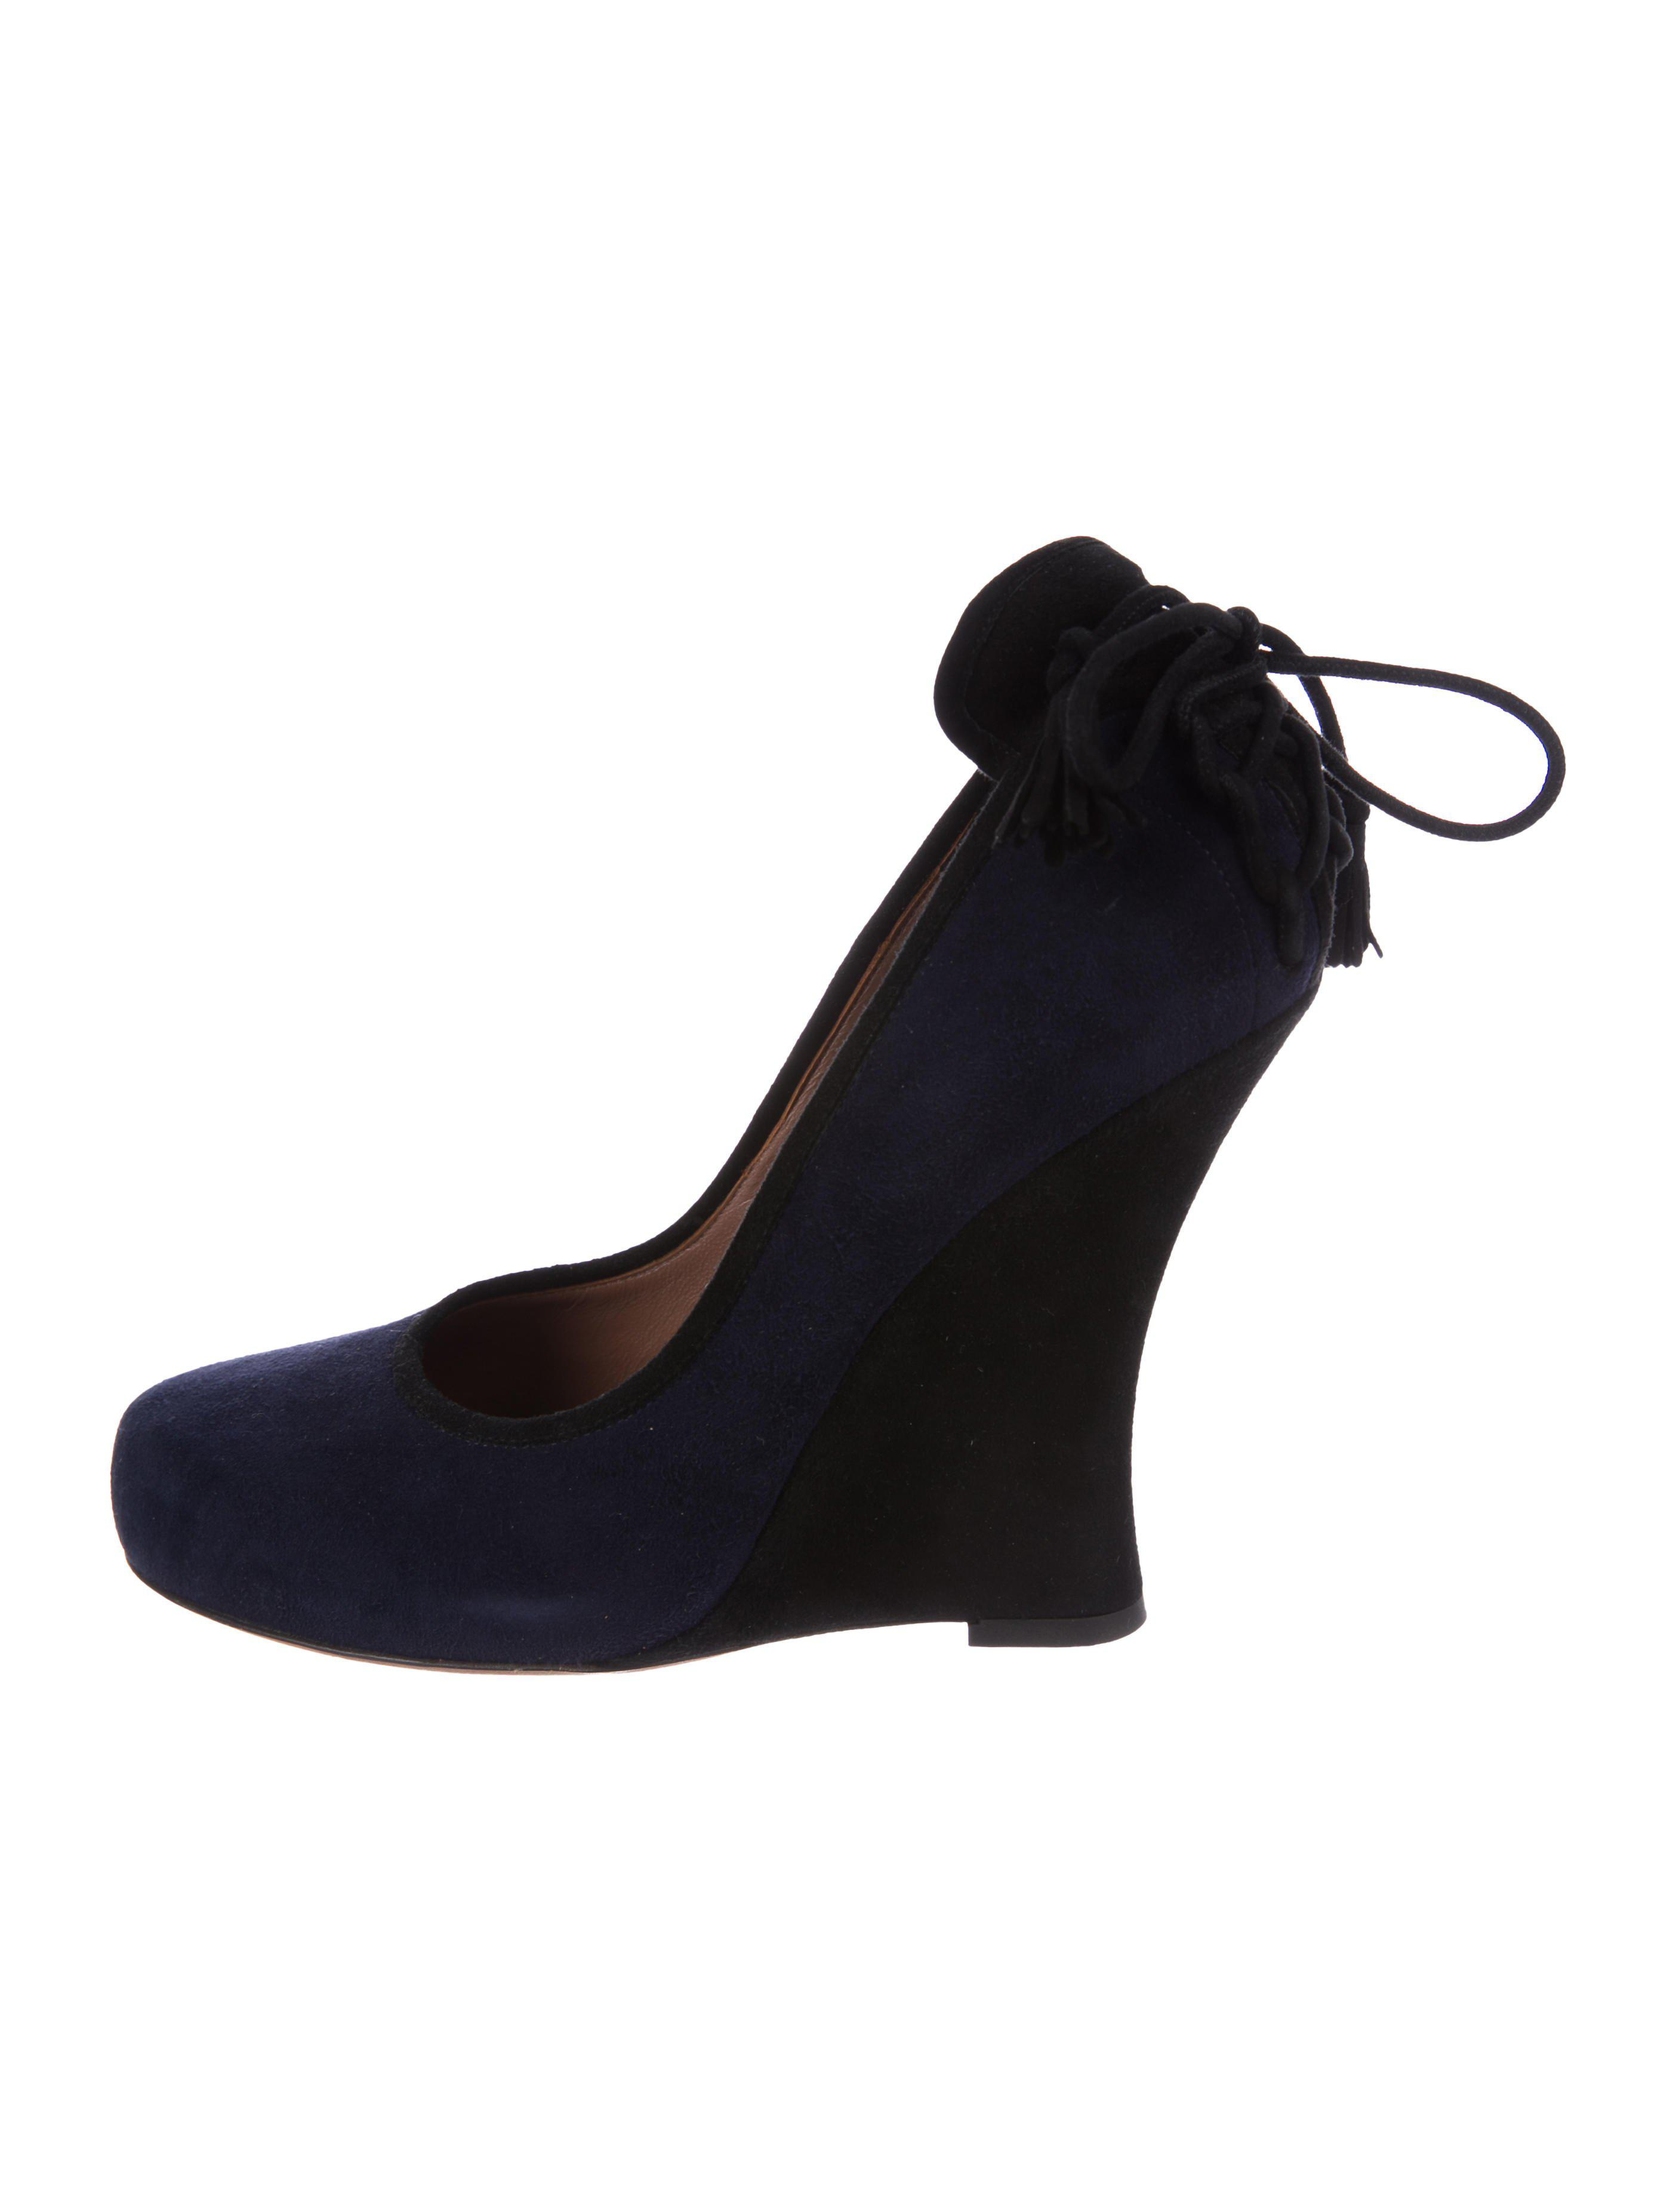 how much for sale buy cheap many kinds of Tabitha Simmons Wedge Round-Toe Wedges discount 100% guaranteed 100% original sale online free shipping supply bZW4hIy